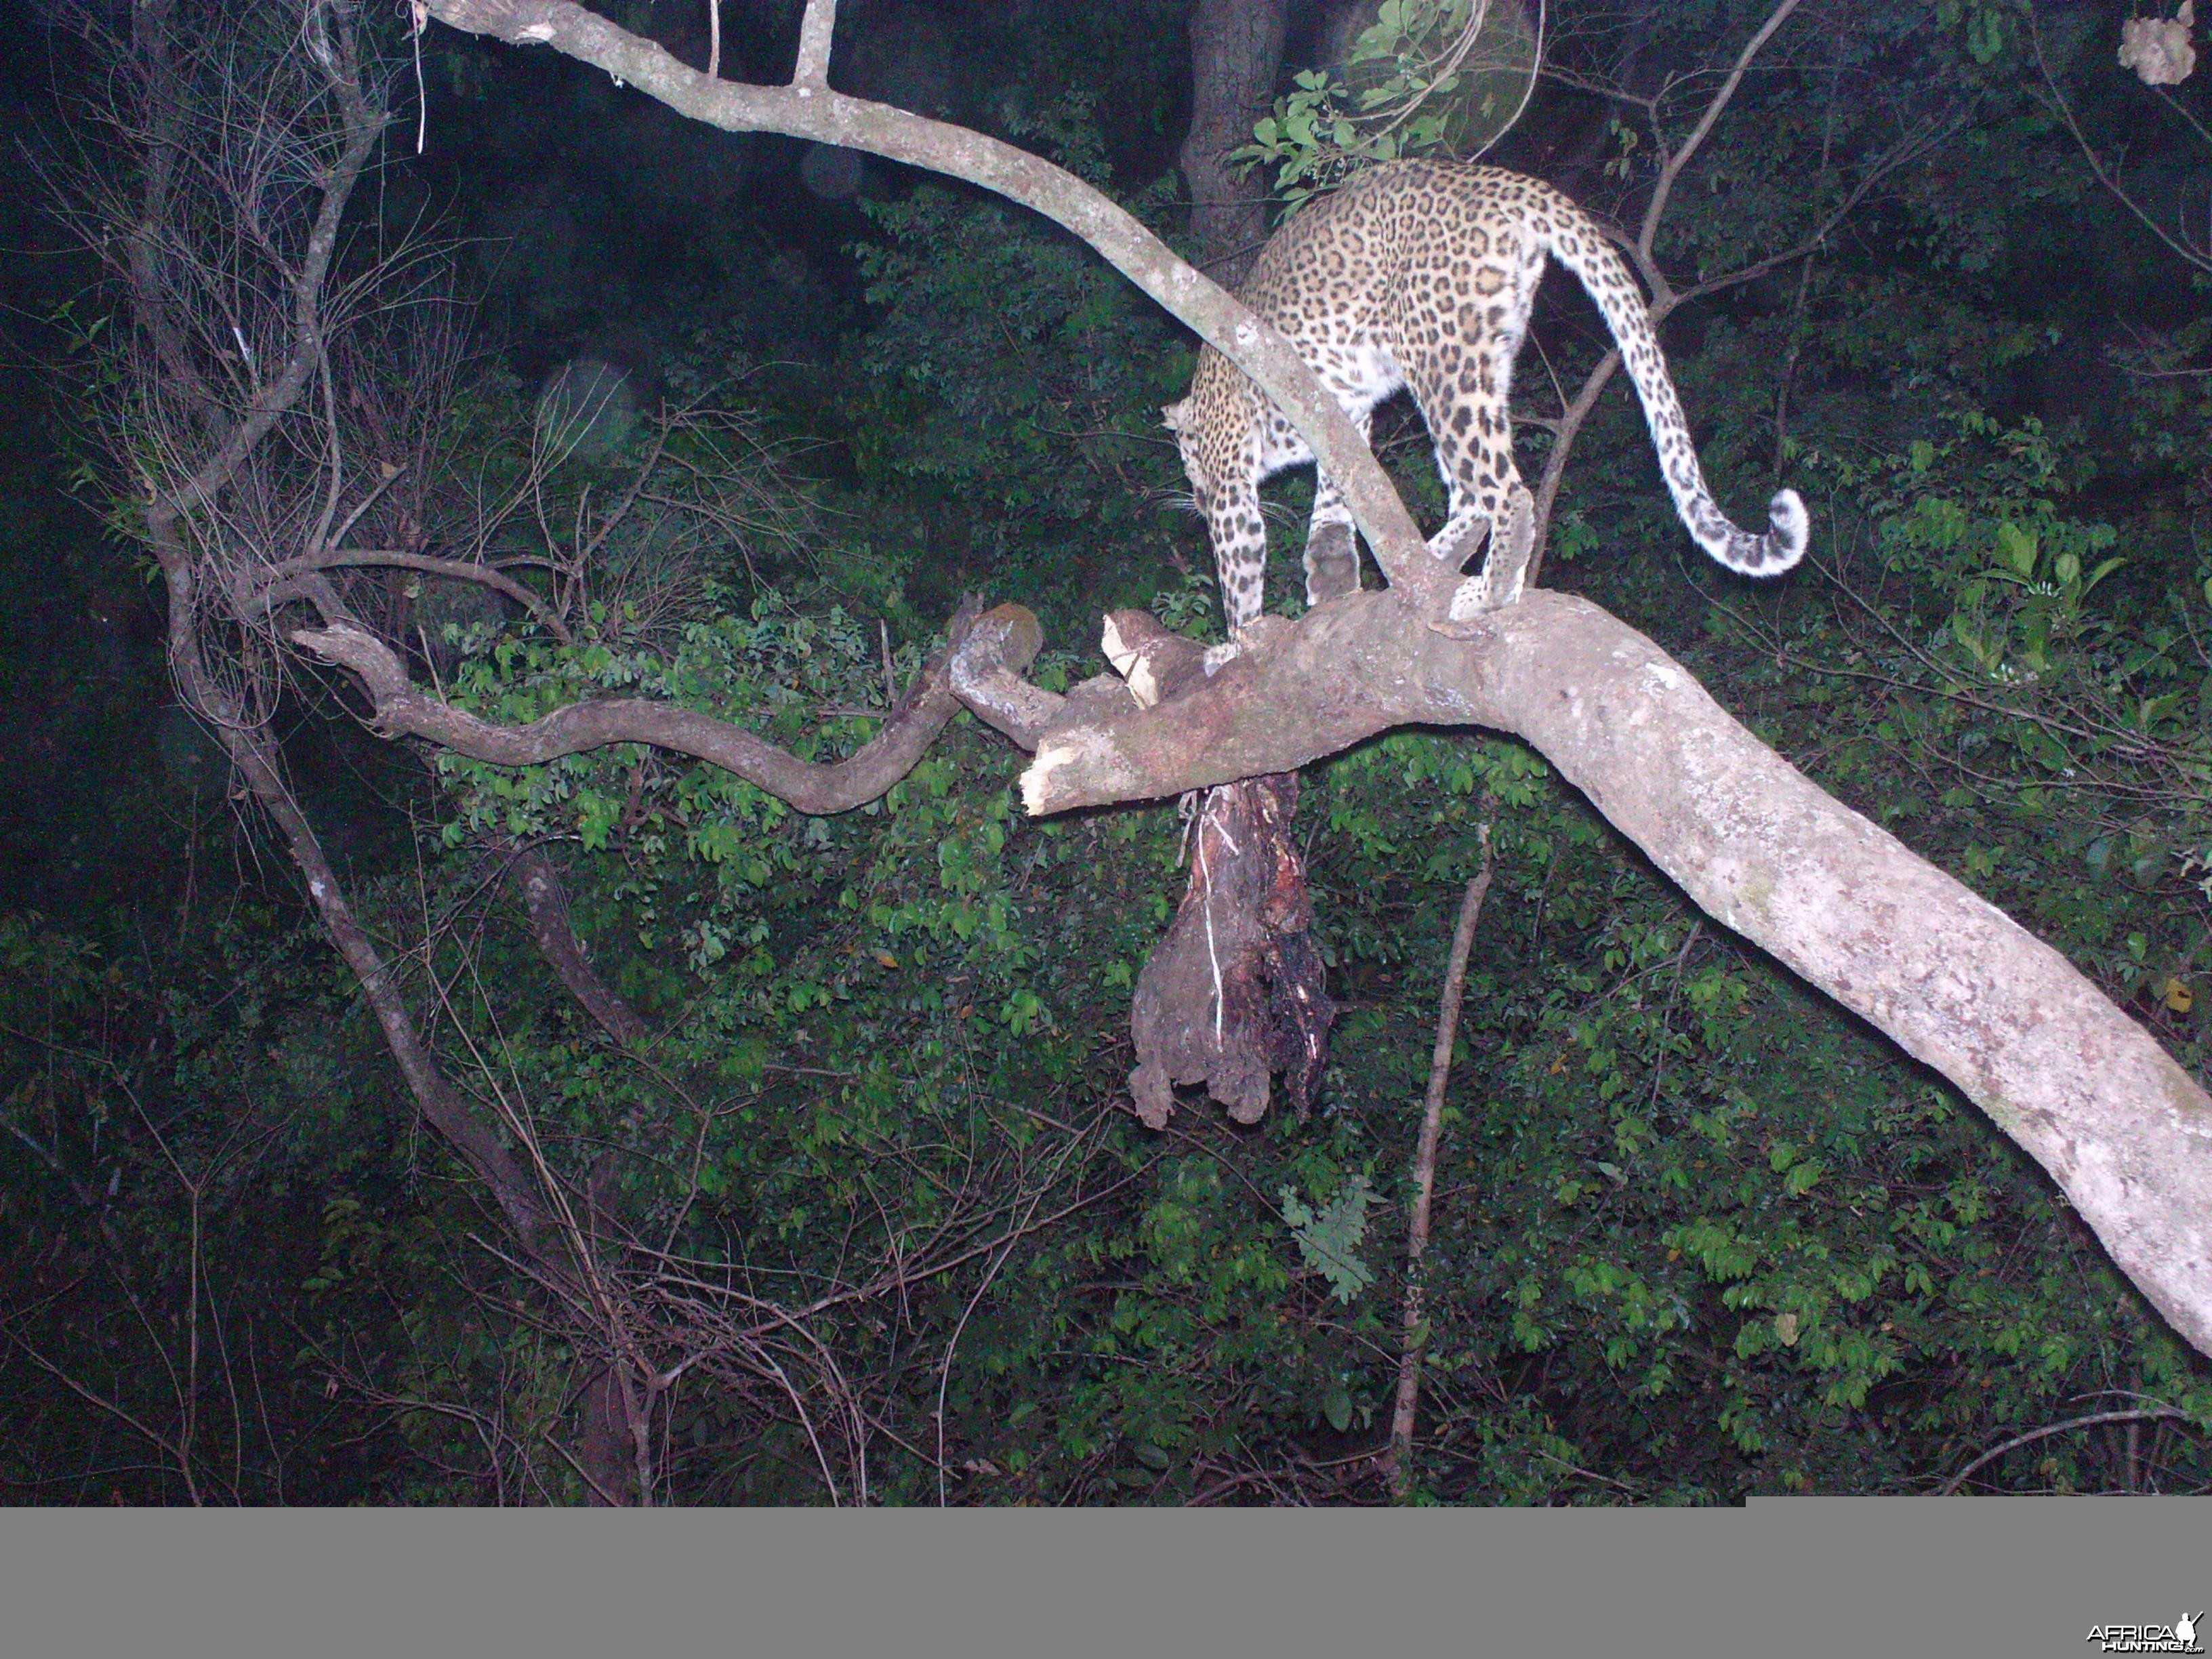 Leopard on Trail Camera